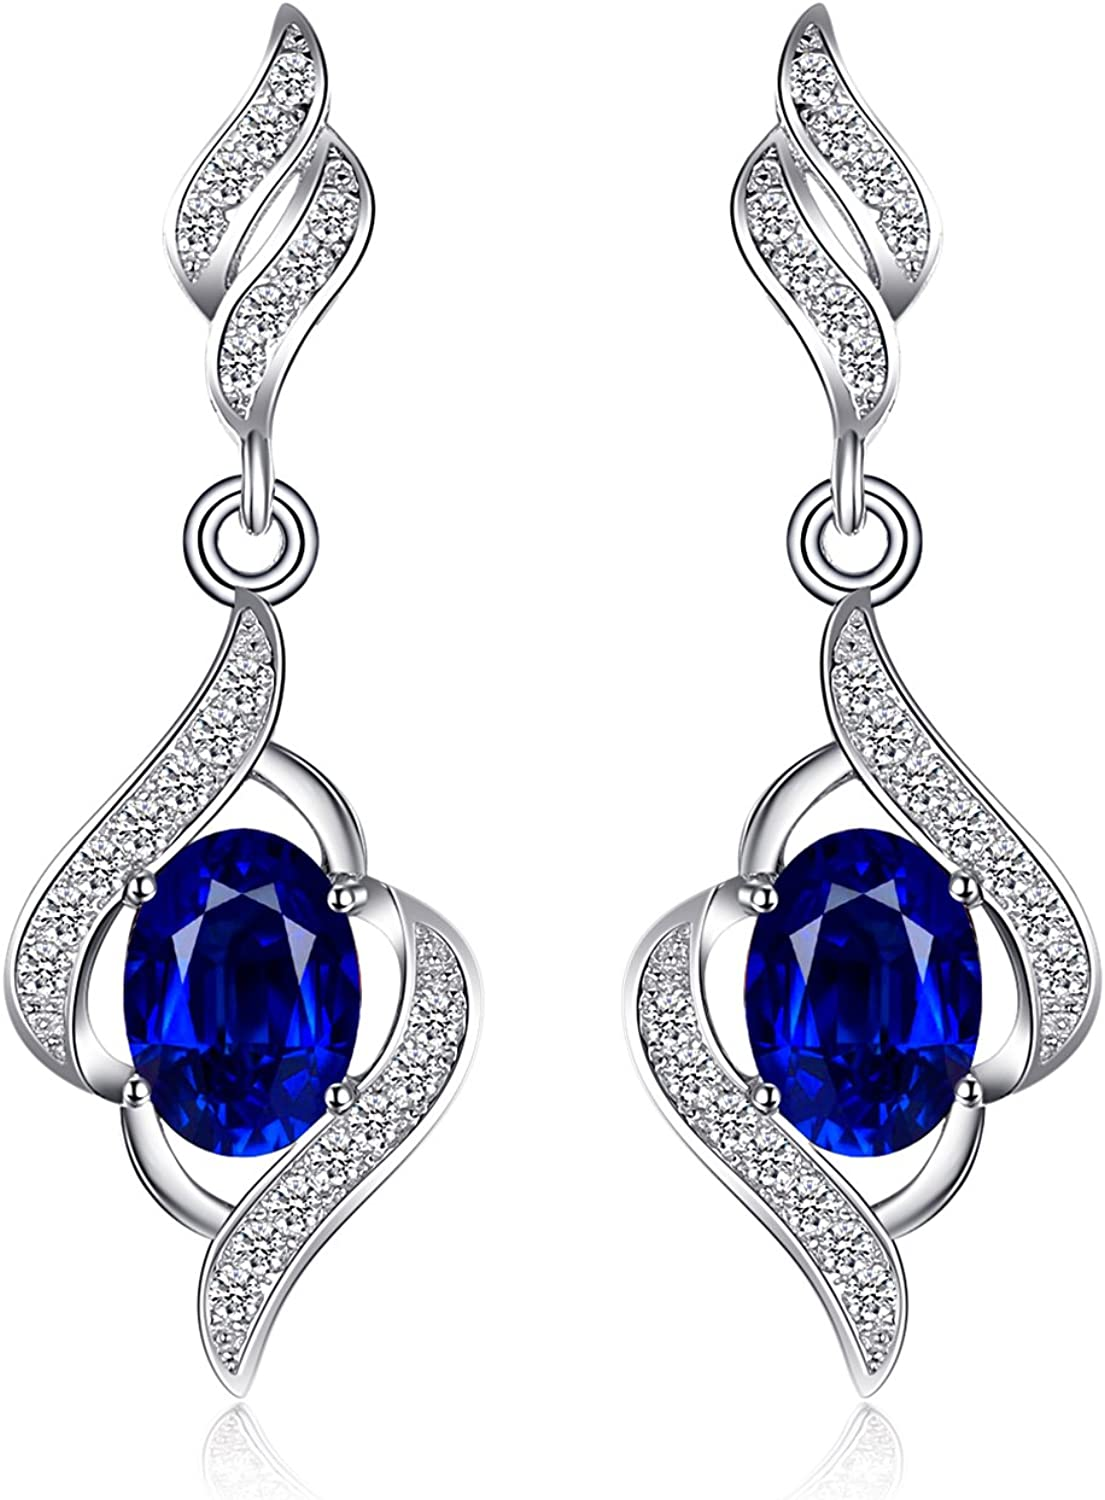 JewelryPalace Pendientes mujeres 2.2ct zafiro azul Plata de ley 925